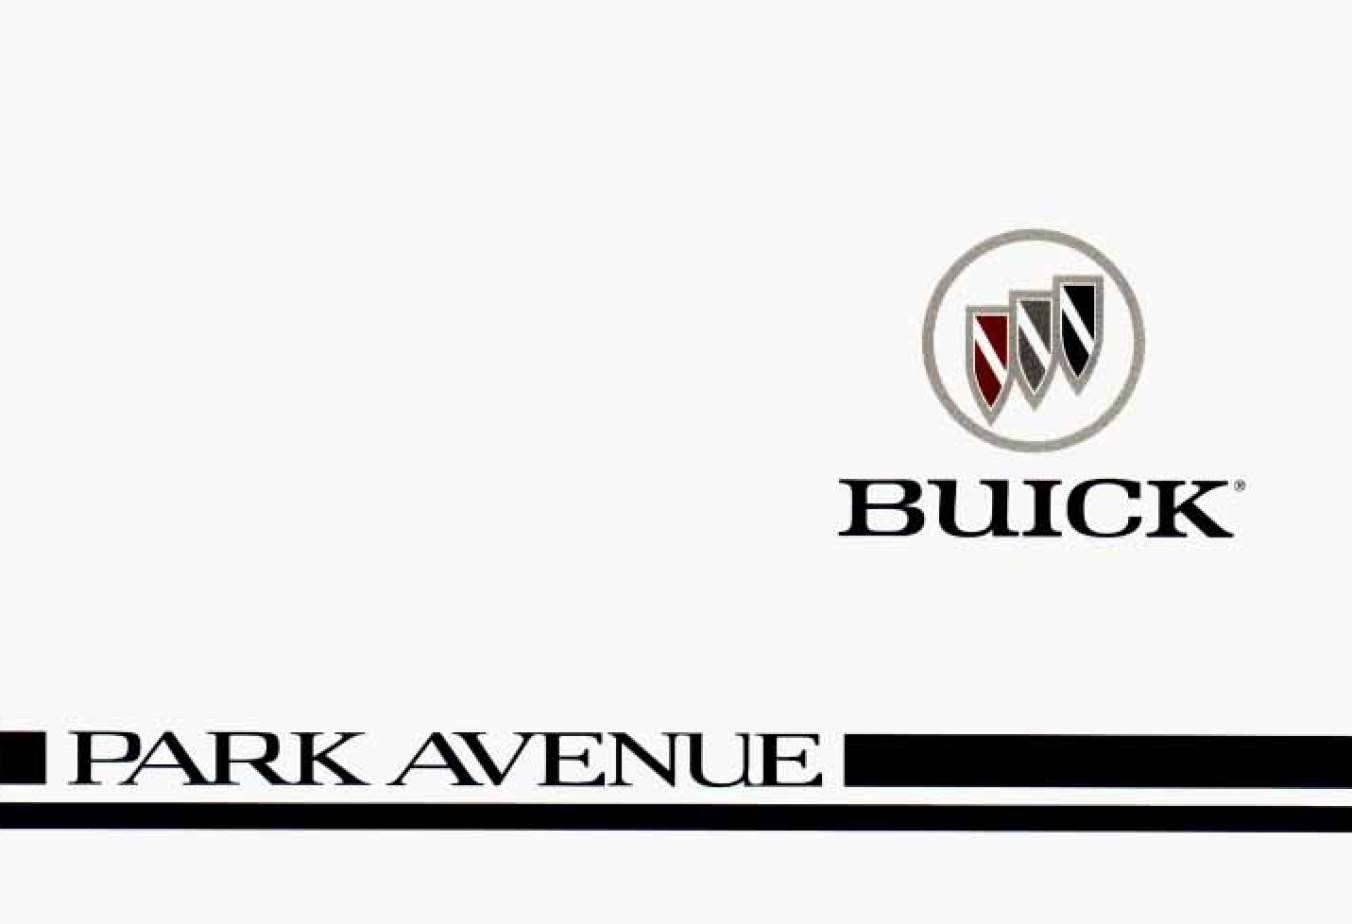 Buick Park Avenue 1996 Owner's Manual has been published